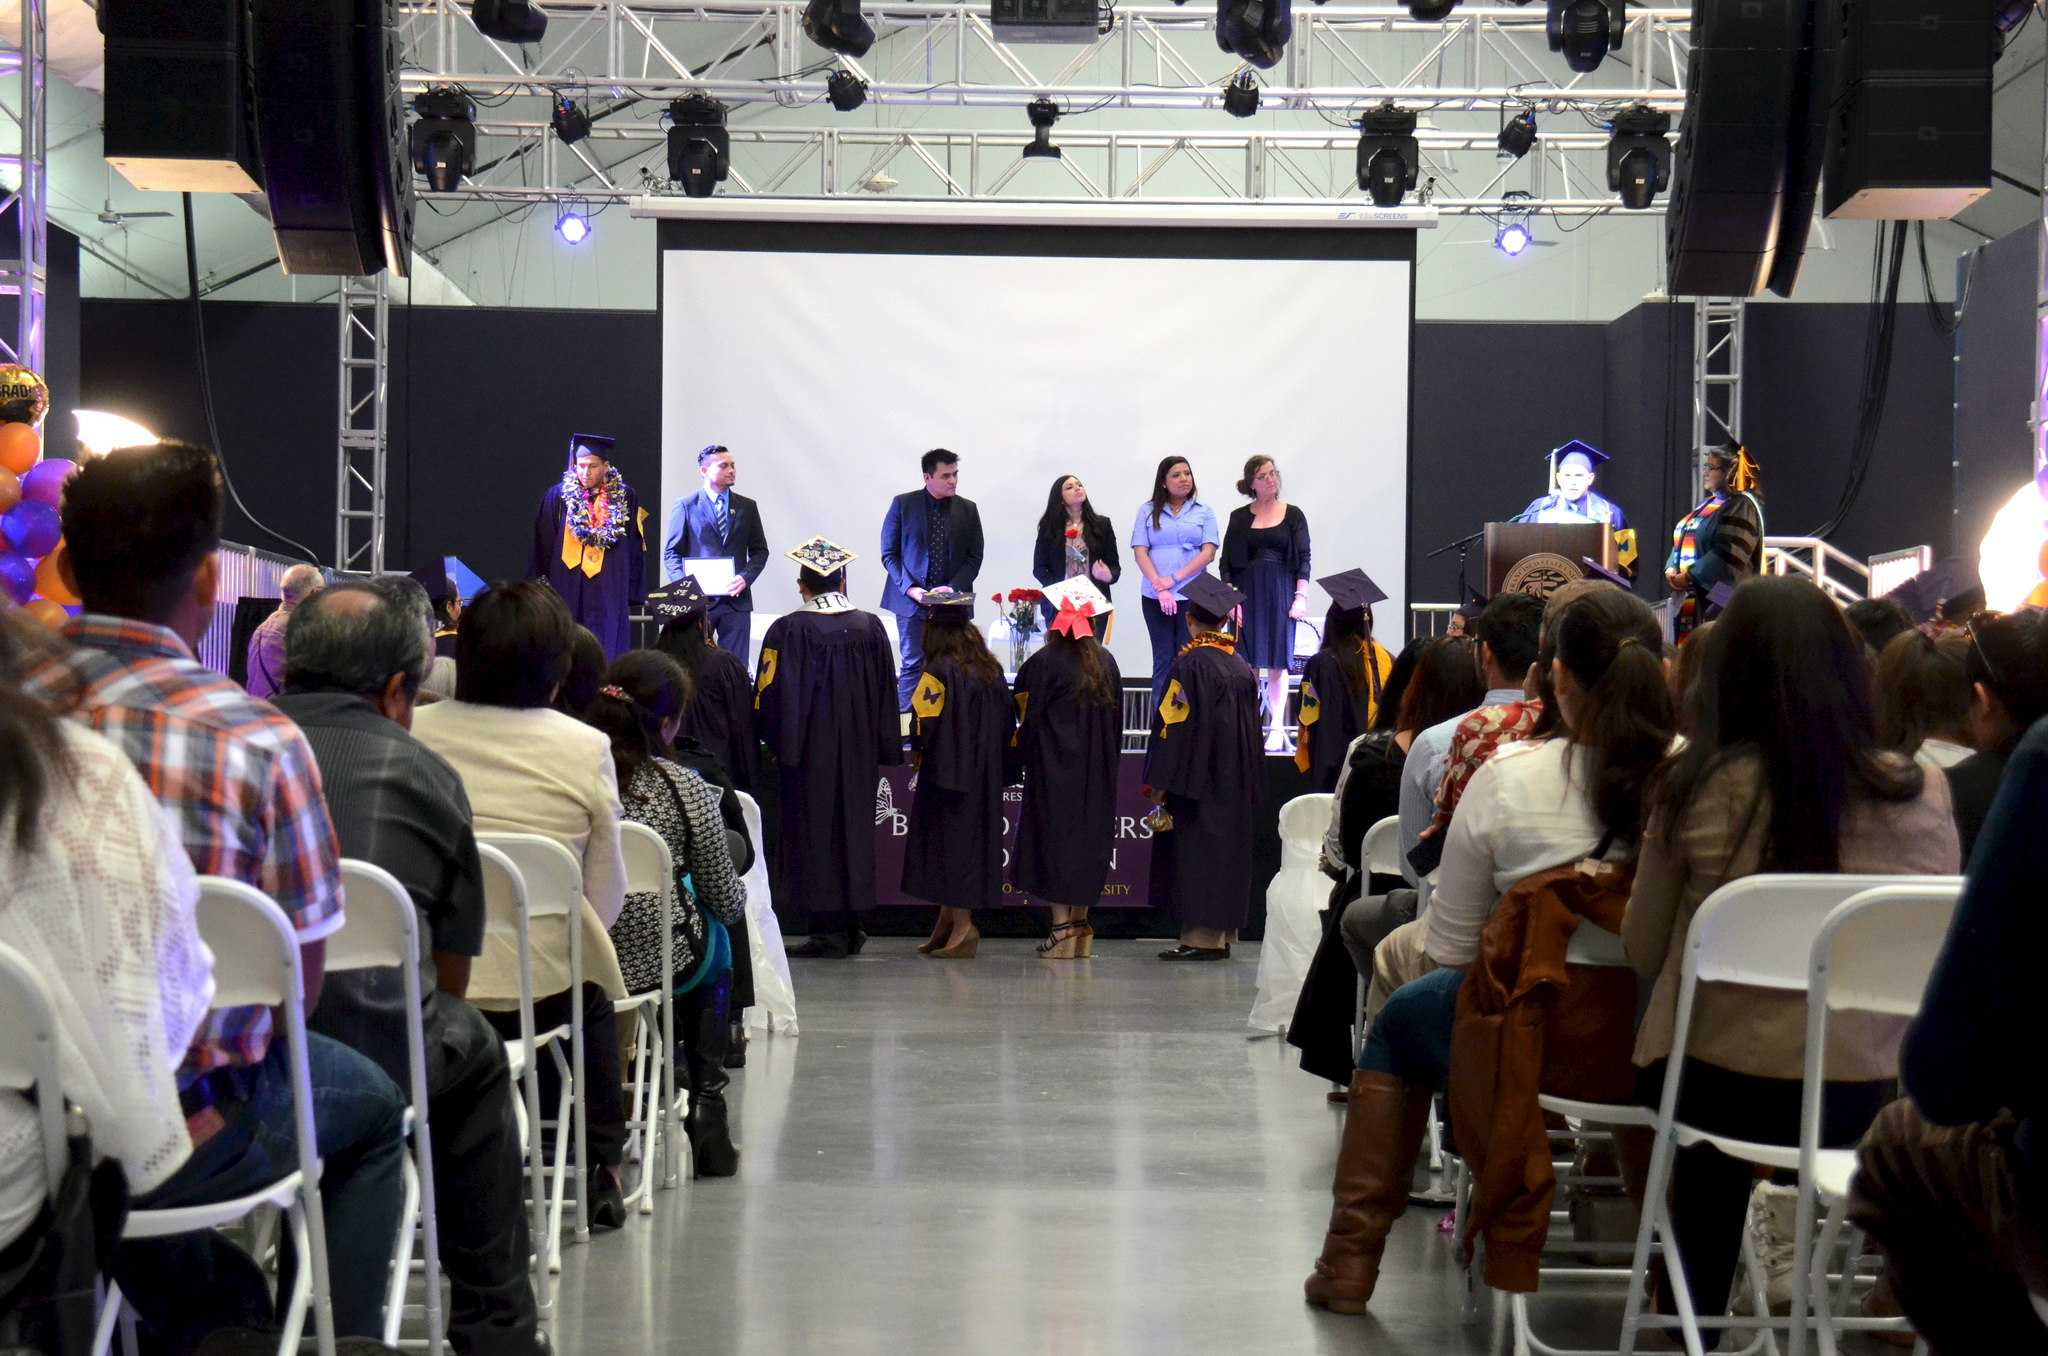 Undocumented graduates celebrate at first annual Beyond Borders ceremony